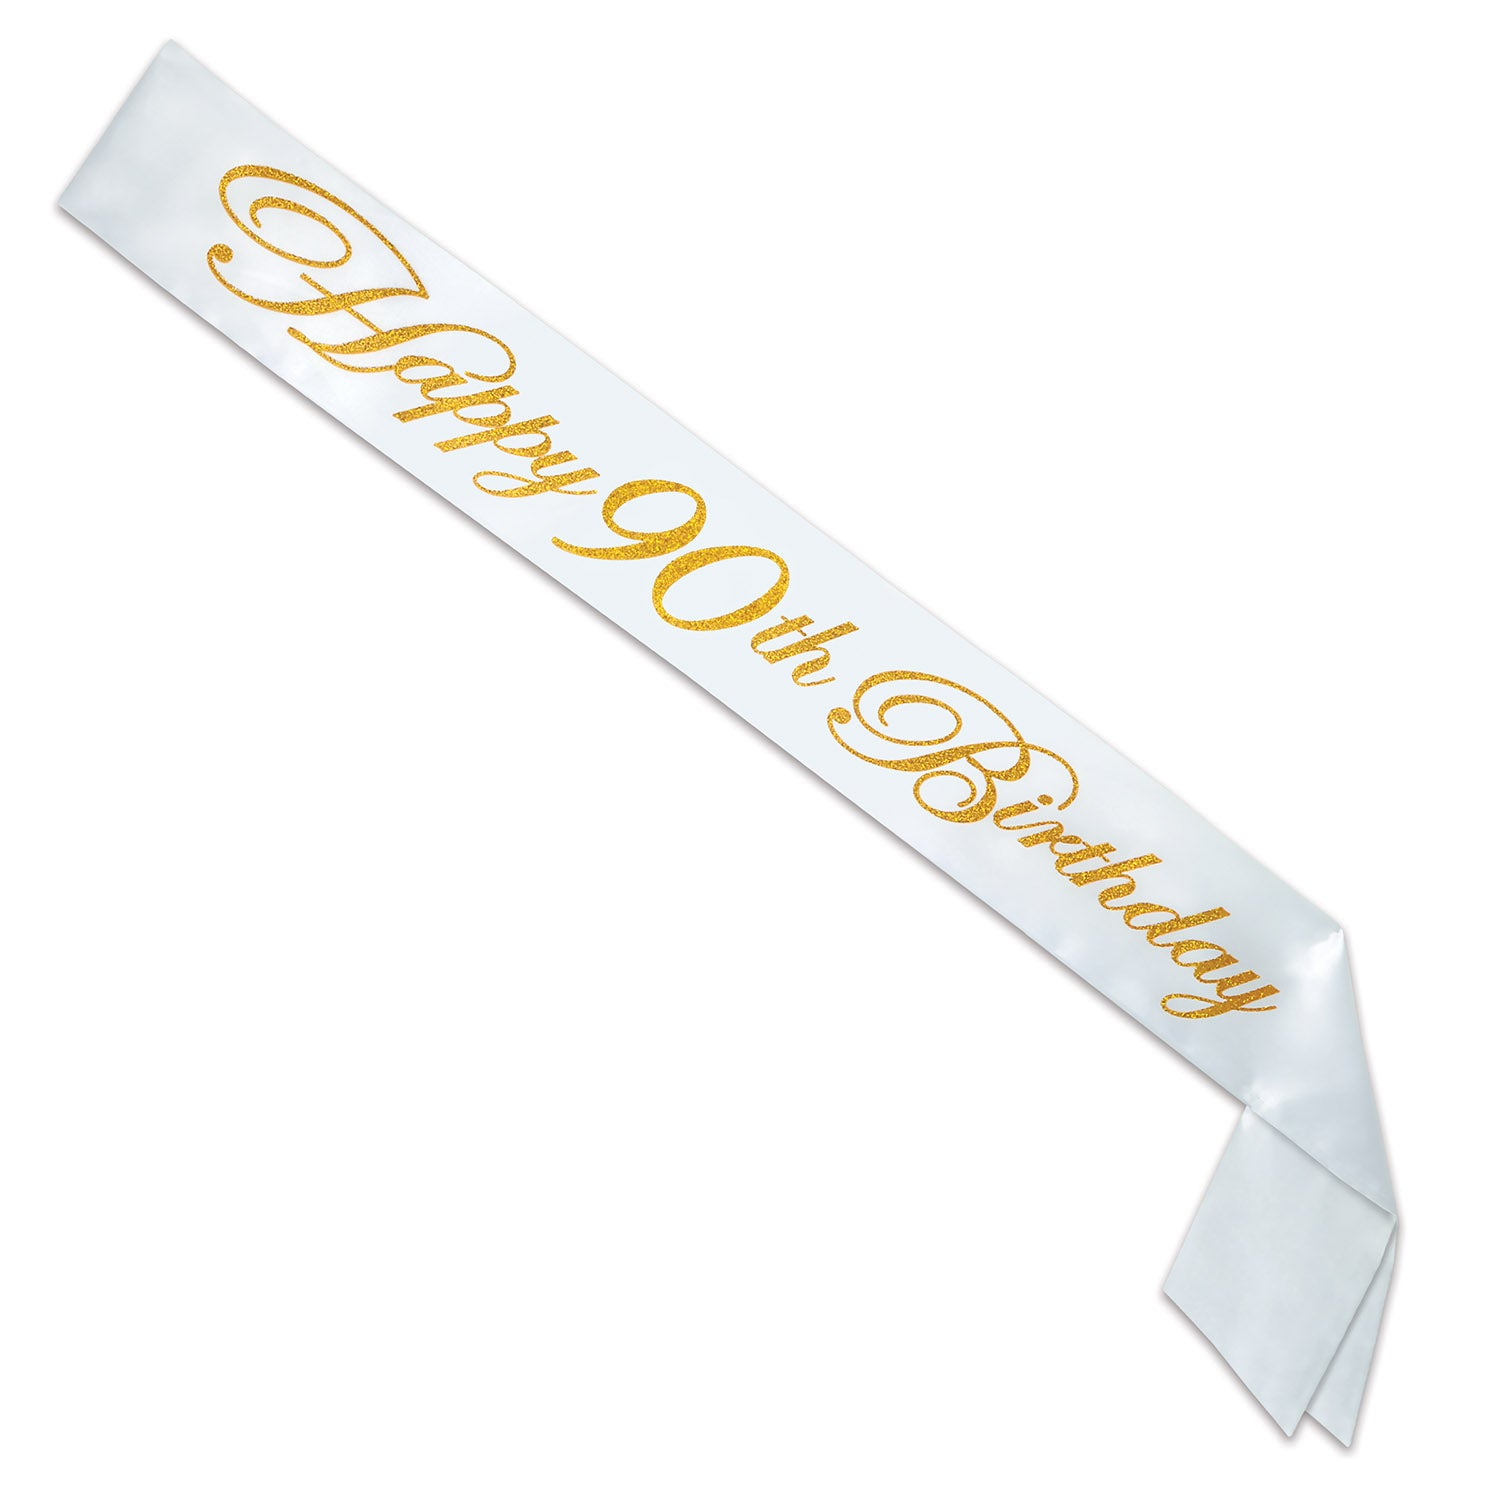 Glittered Happy 90th Birthday Satin Sash by Beistle - 90th Birthday Party Decorations